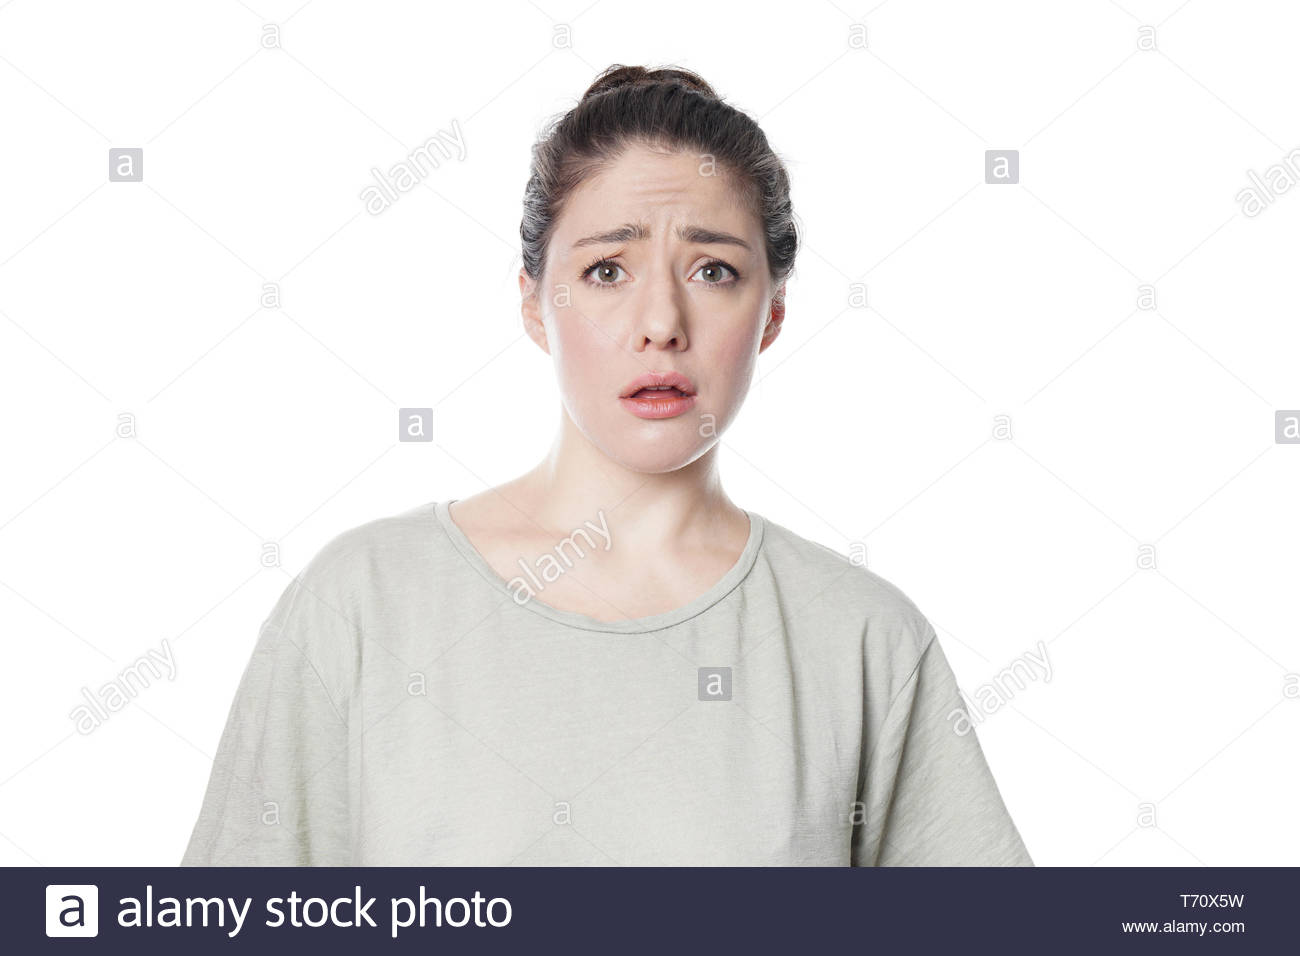 dumbfounded affronted young woman frowning with disbelief Stock Photo